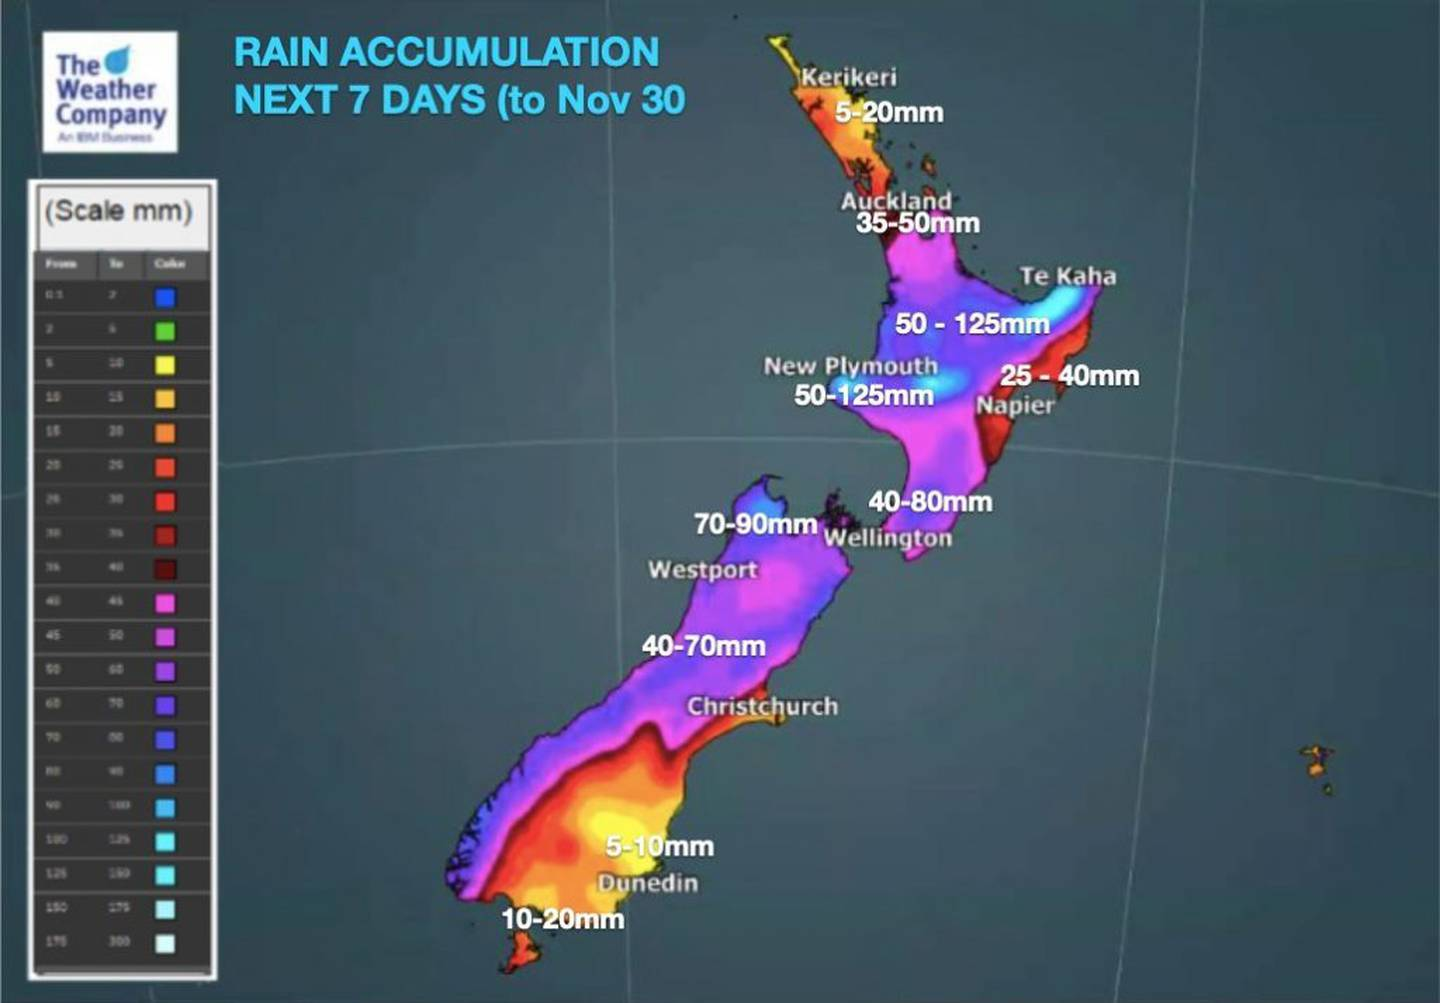 Parts of the country should brace itself for heavy rain this week. Source: WeatherWatch.co.nz